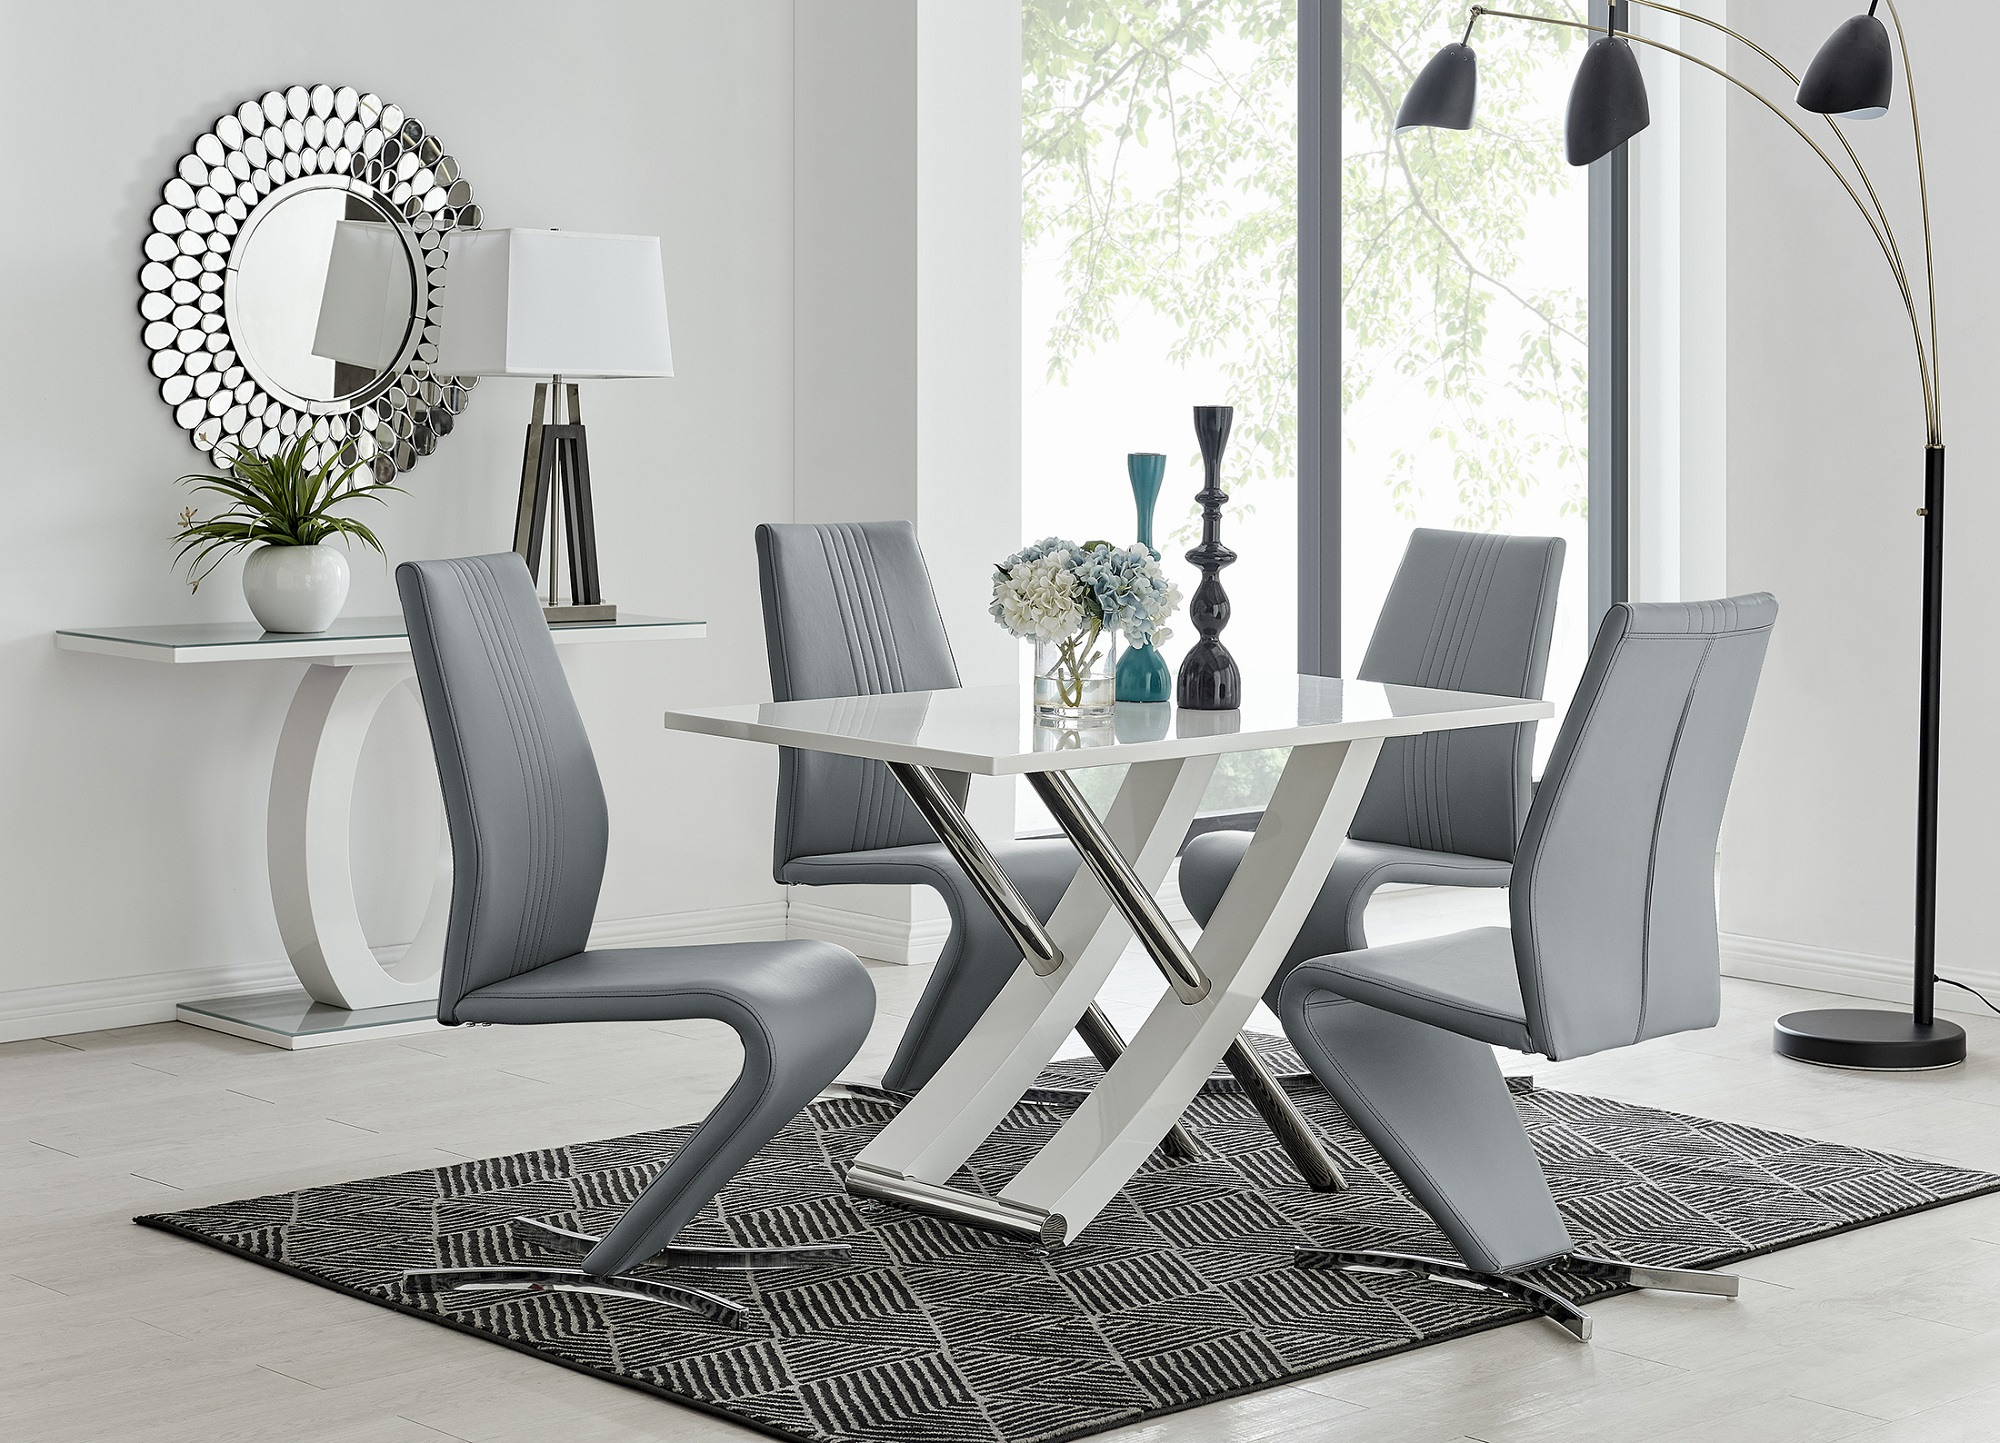 Mayfair 9 White High Gloss And Stainless Steel Dining Table And 9 Luxury  Willow Chairs Set